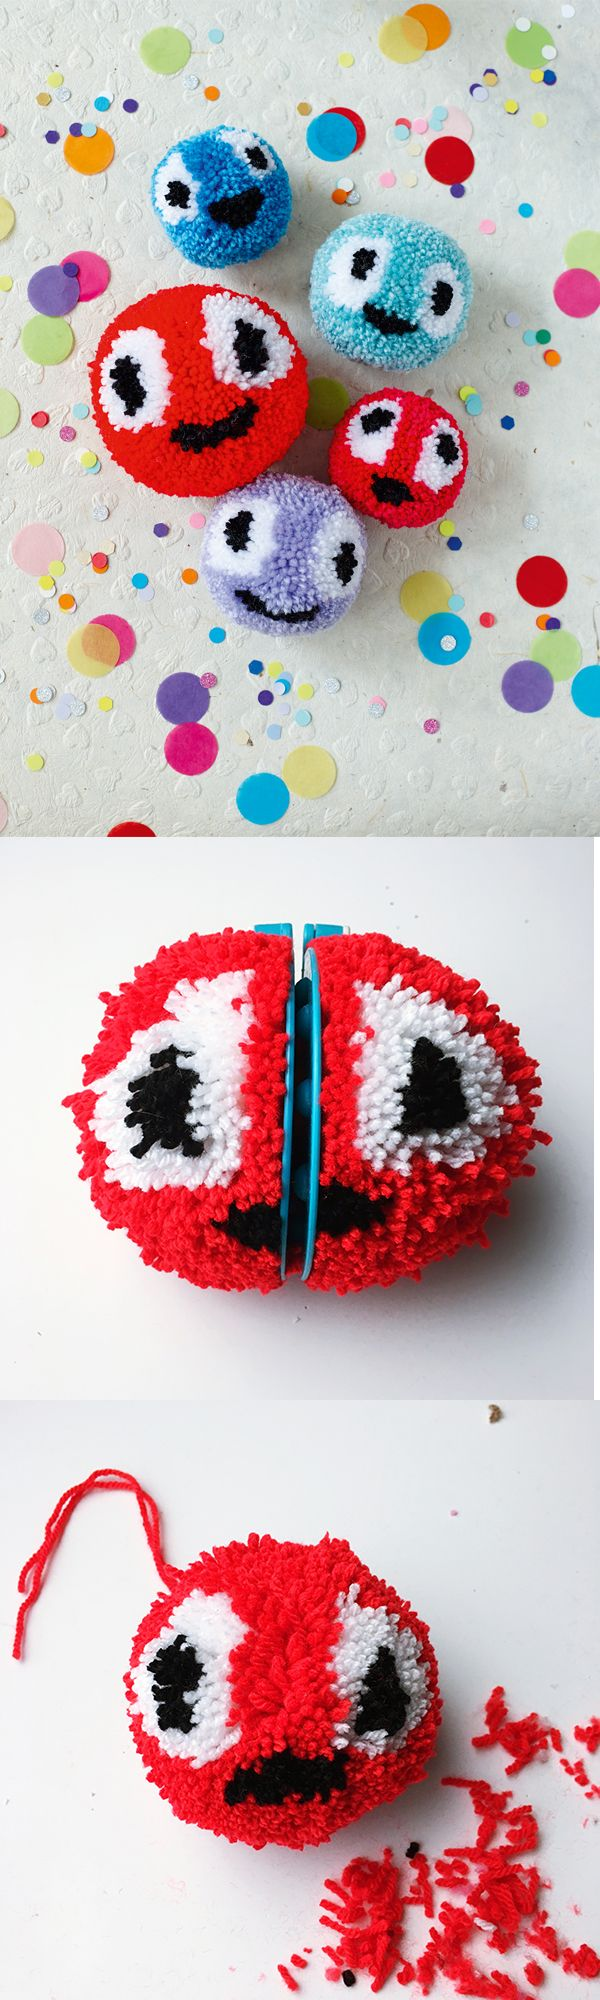 1634 best images about crafts arts activities for kids for Pom pom craft patterns